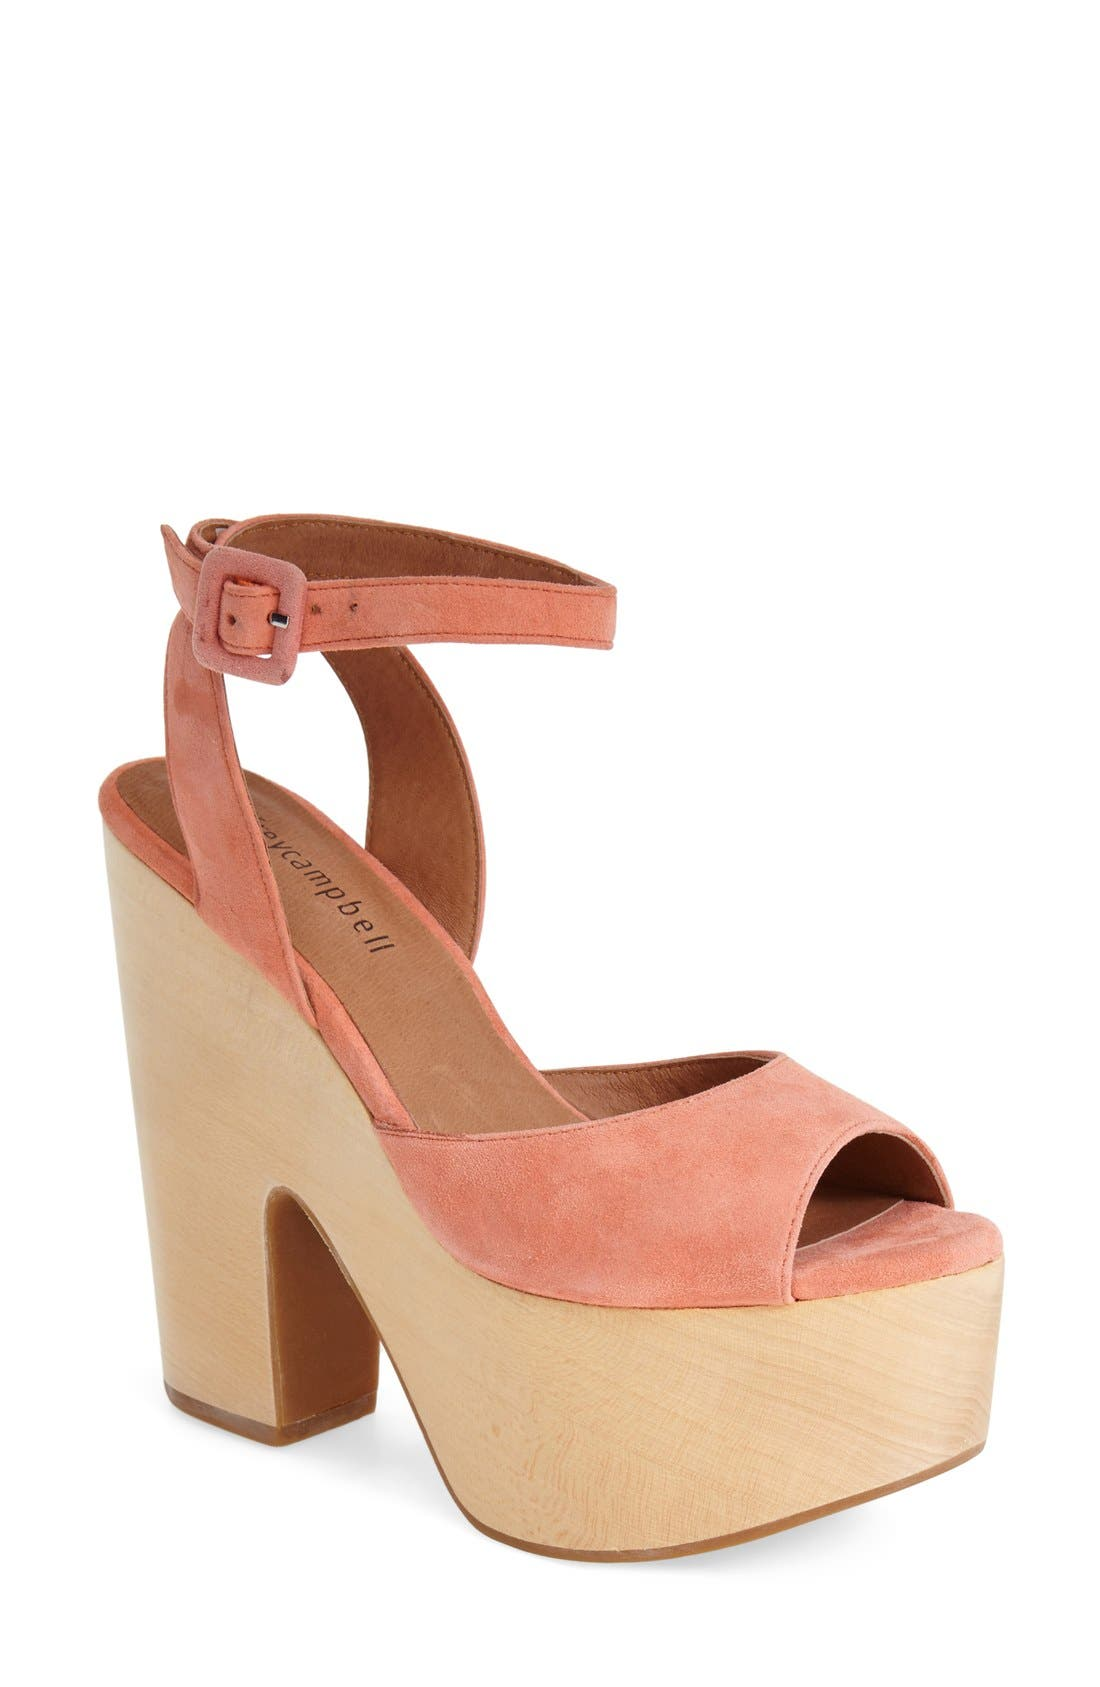 Alternate Image 1 Selected - Jeffrey Campbell 'Sassy' Wood Platform Sandal (Women)